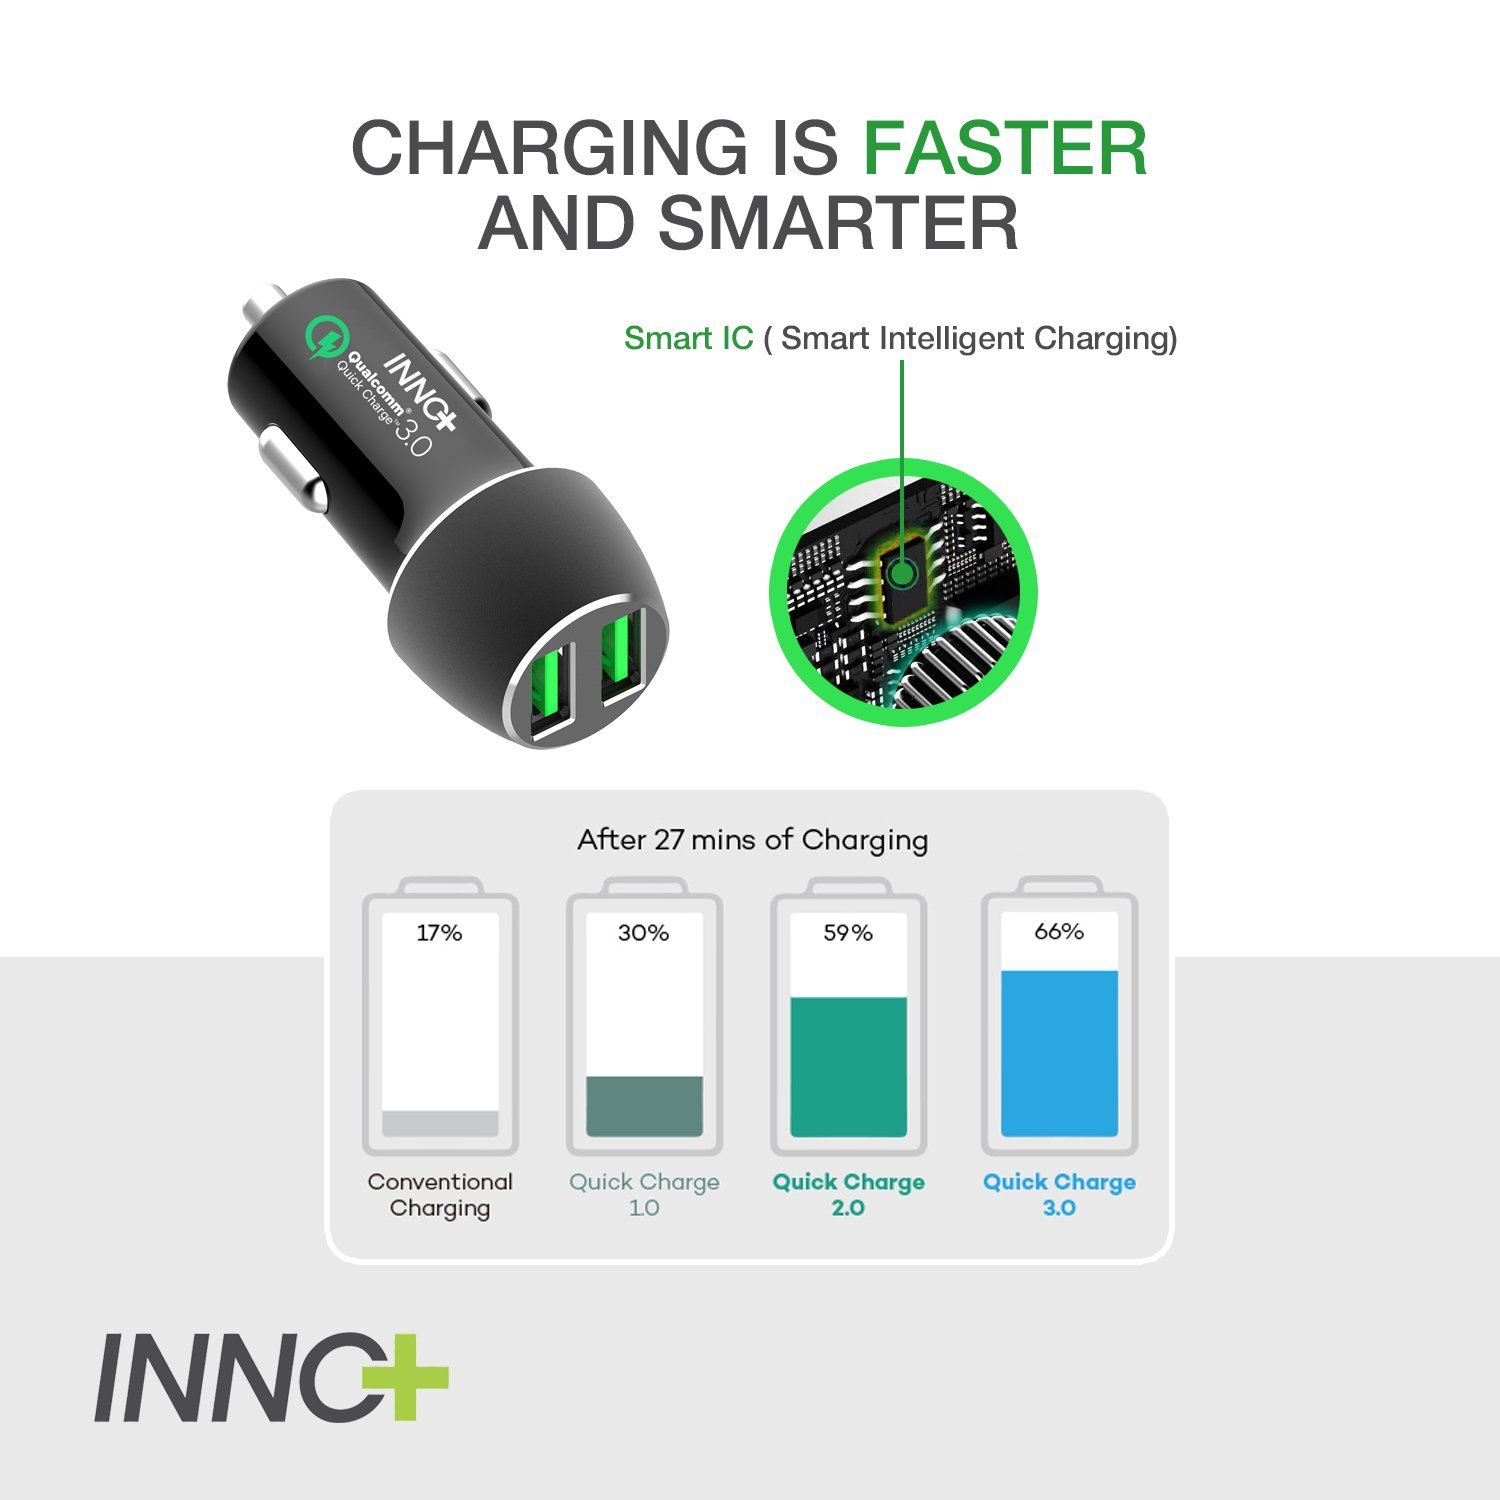 Ardent 4351590591 Qualcomm Certified Xperia XZ2 and More Quick Charge 3.0 Car Charger LG G7 ThinQ Black HTC 10 Dual USB Charging Adapter for Samsung Galaxy S9//Note8//9